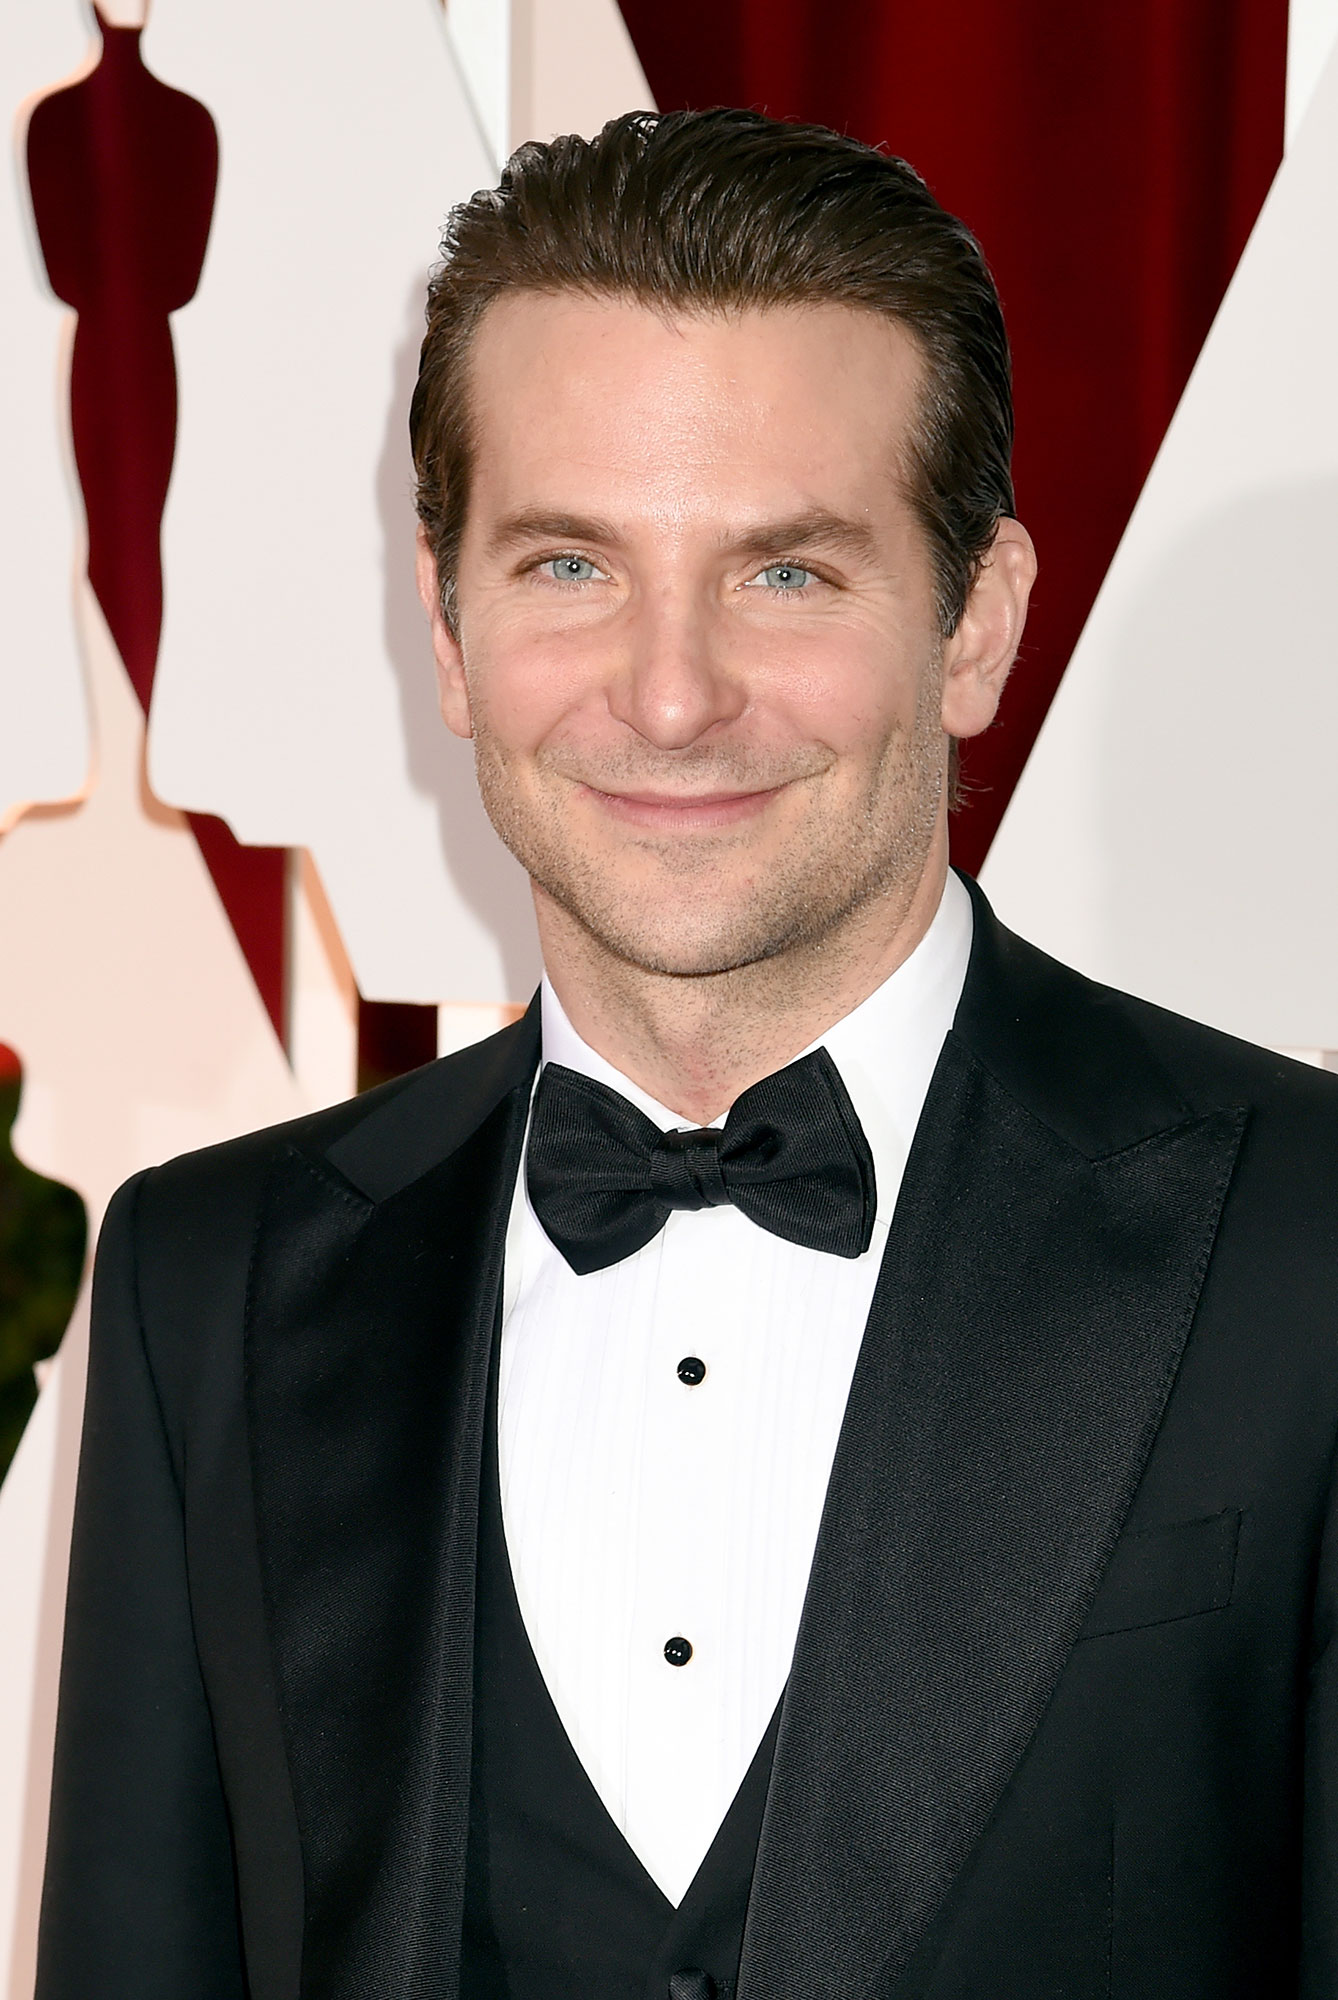 """Bradley Cooper - Stars Who Have Never Won Oscars - Cooper , who was admittedly """" embarrassed """" not to have been nominated for his directing work on A Star Is Born in 2019, has been on a losing streak at the Oscars since 2013, when he was first nominated for Best Actor in Silver Linings Playbook , but he'll have three more chances to take home a gold statue in 2019: His hit film is up for Best Motion Picture of the Year and Best Adapted Screenplay, while he is up for Best Performance by an Actor in a Leading Role."""